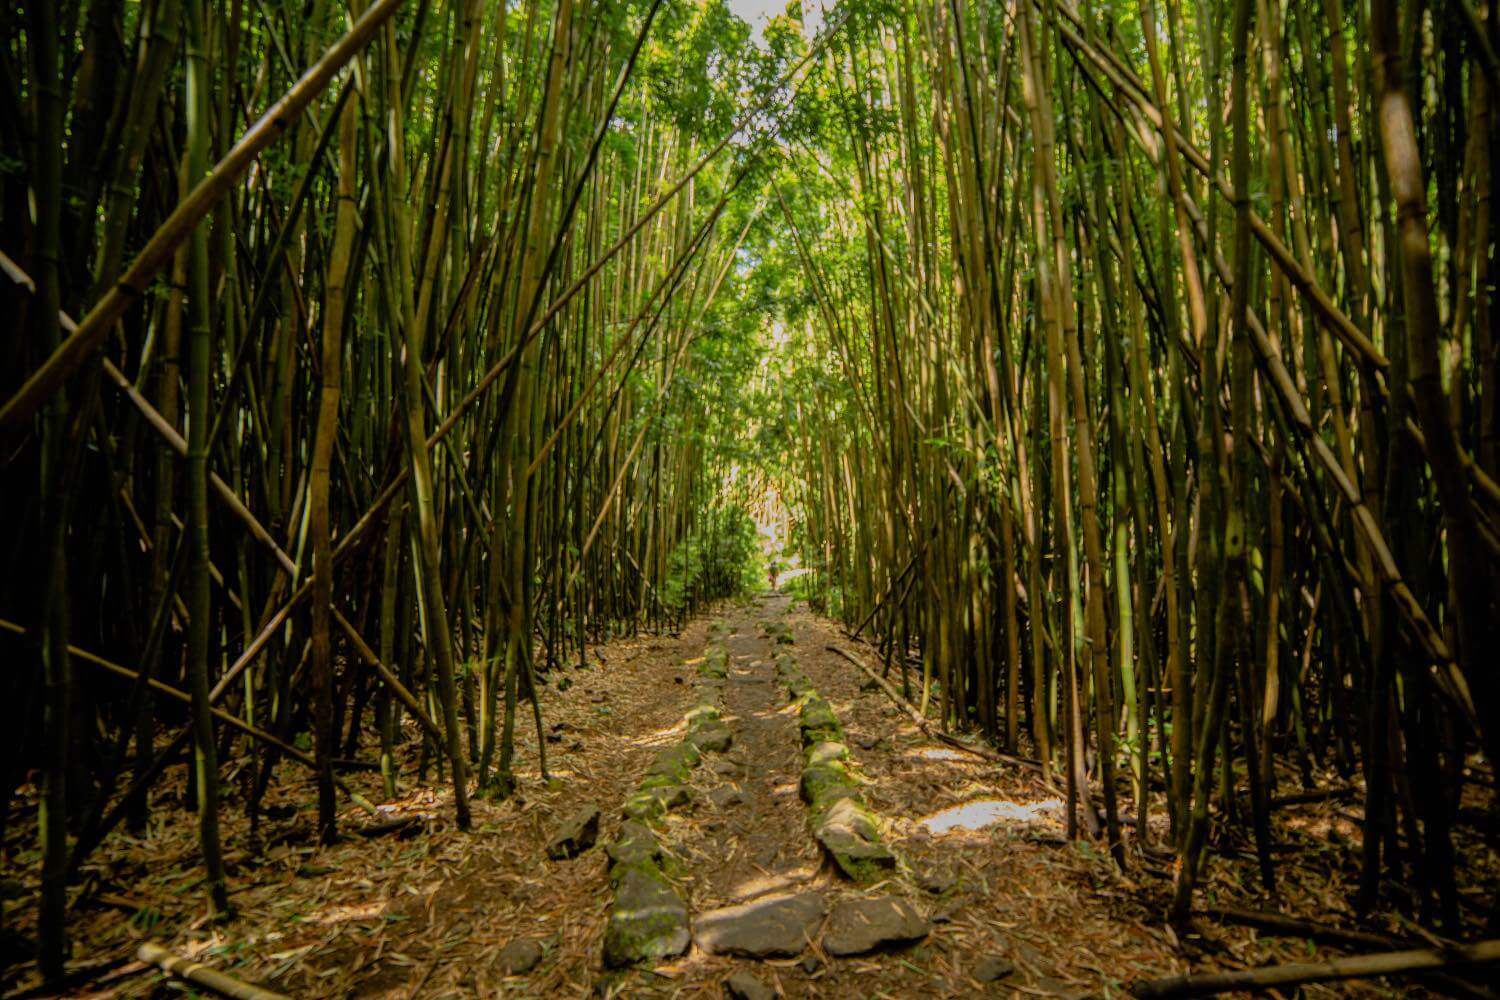 The Pipiwai Trail inside Haleakala National Park